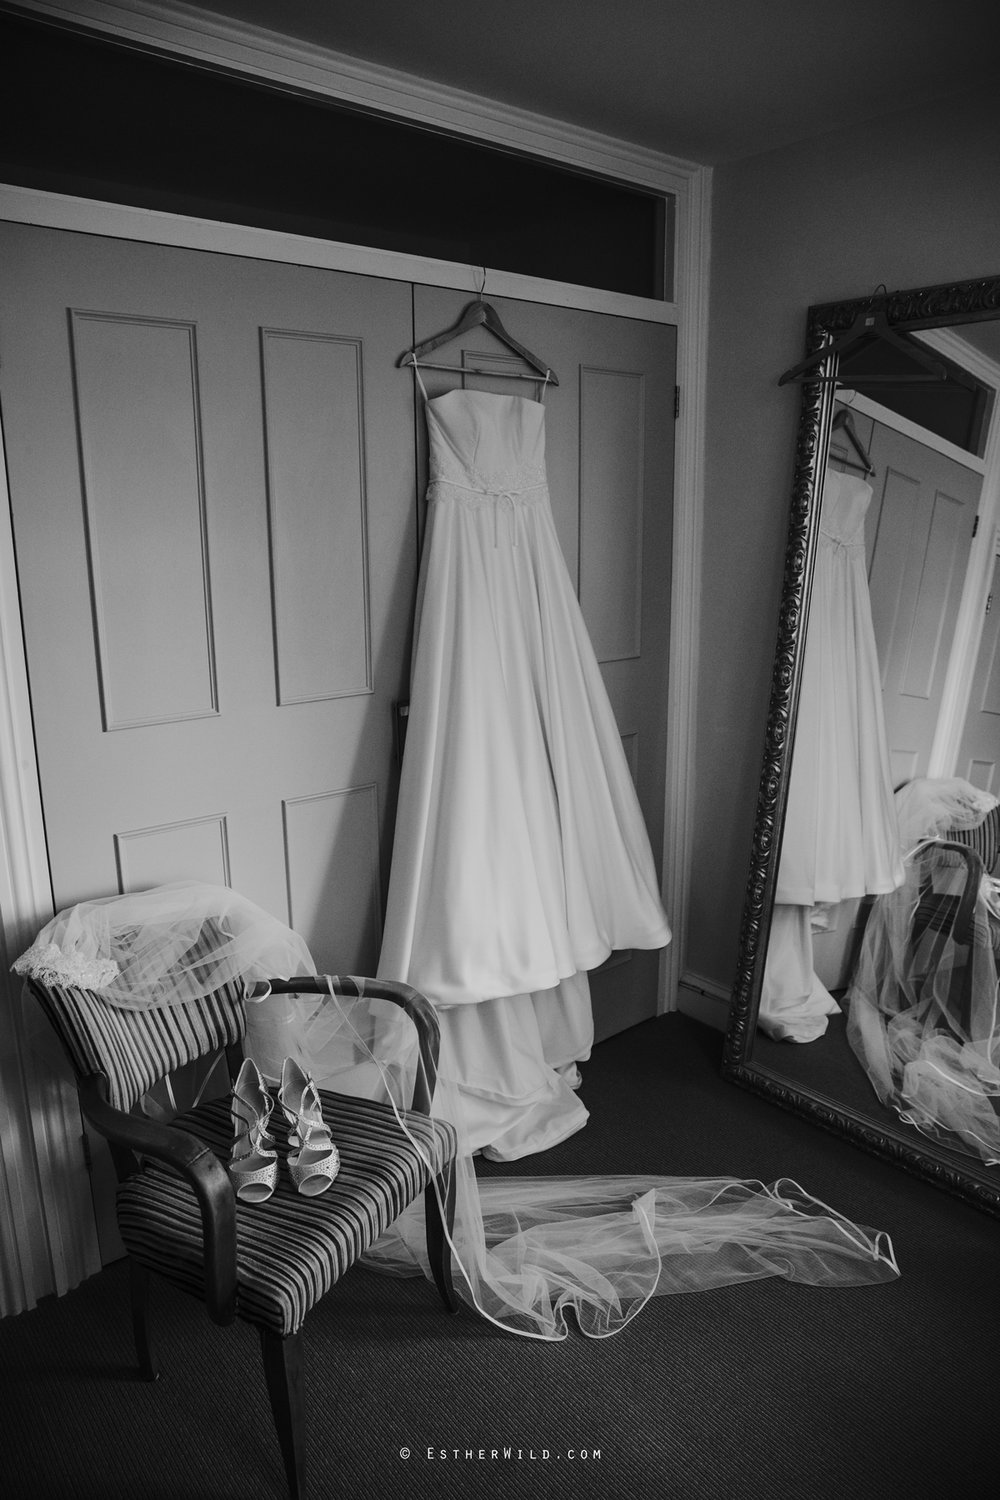 The_BoatHouse_Wedding_Venue_Ormesby_Norfolk_Broads_Boat_Wedding_Photography_Esther_Wild_Photographer_IMG_0051-2.jpg